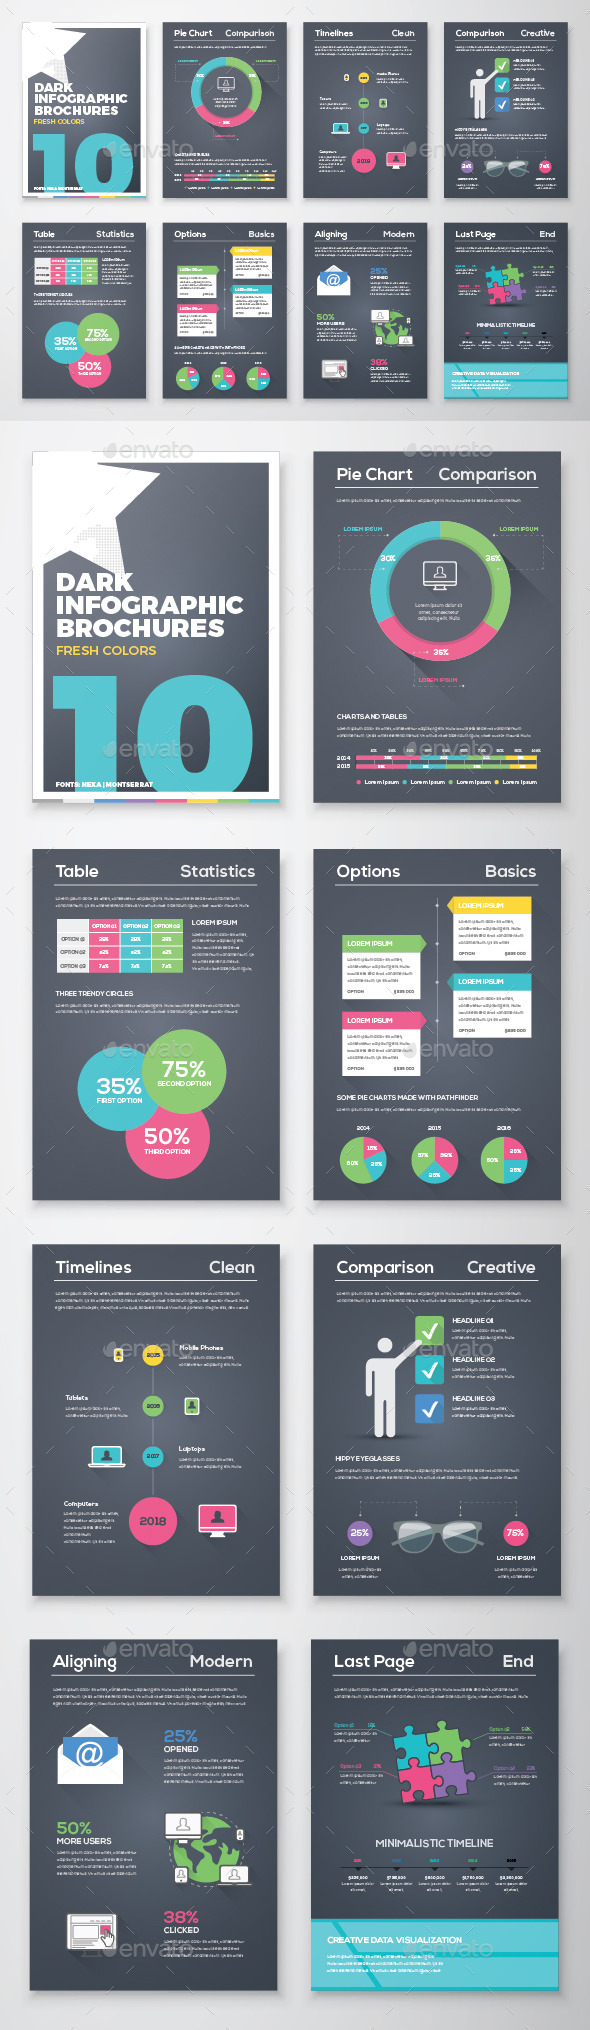 GraphicRiver Infographic Brochure Vector Elements Kit 10 11786075